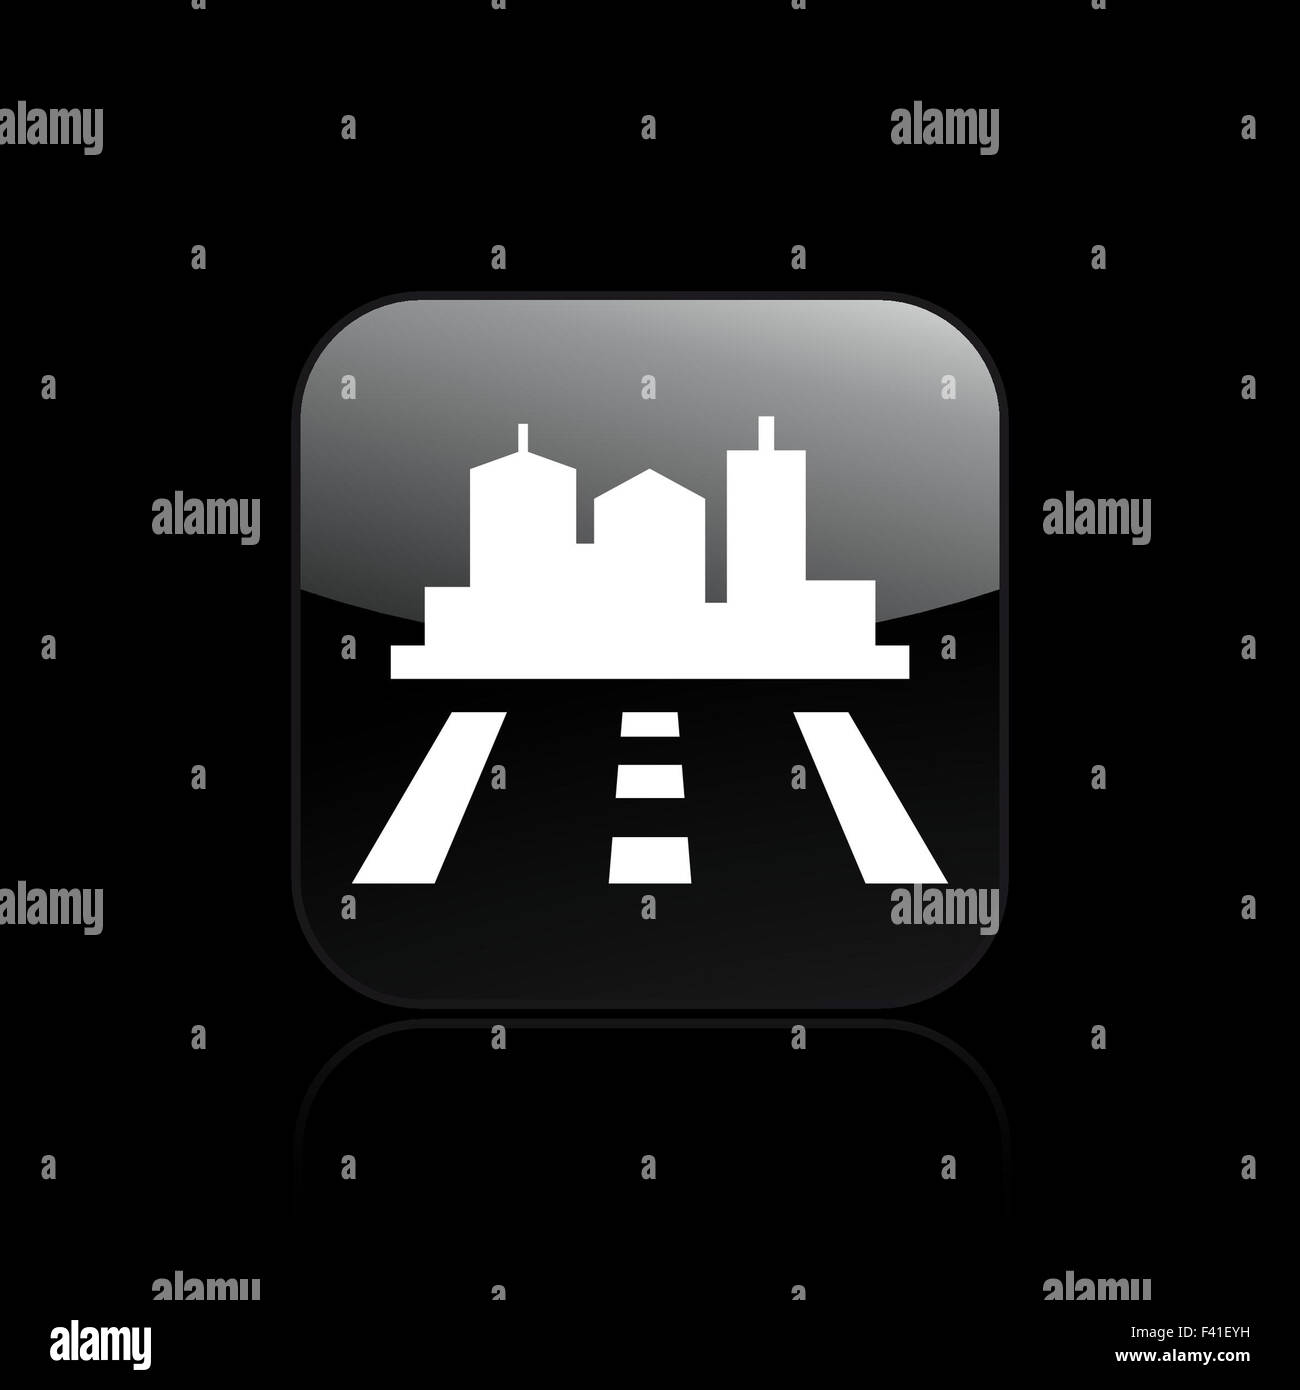 Vector illustration of single navigate icon - Stock Image